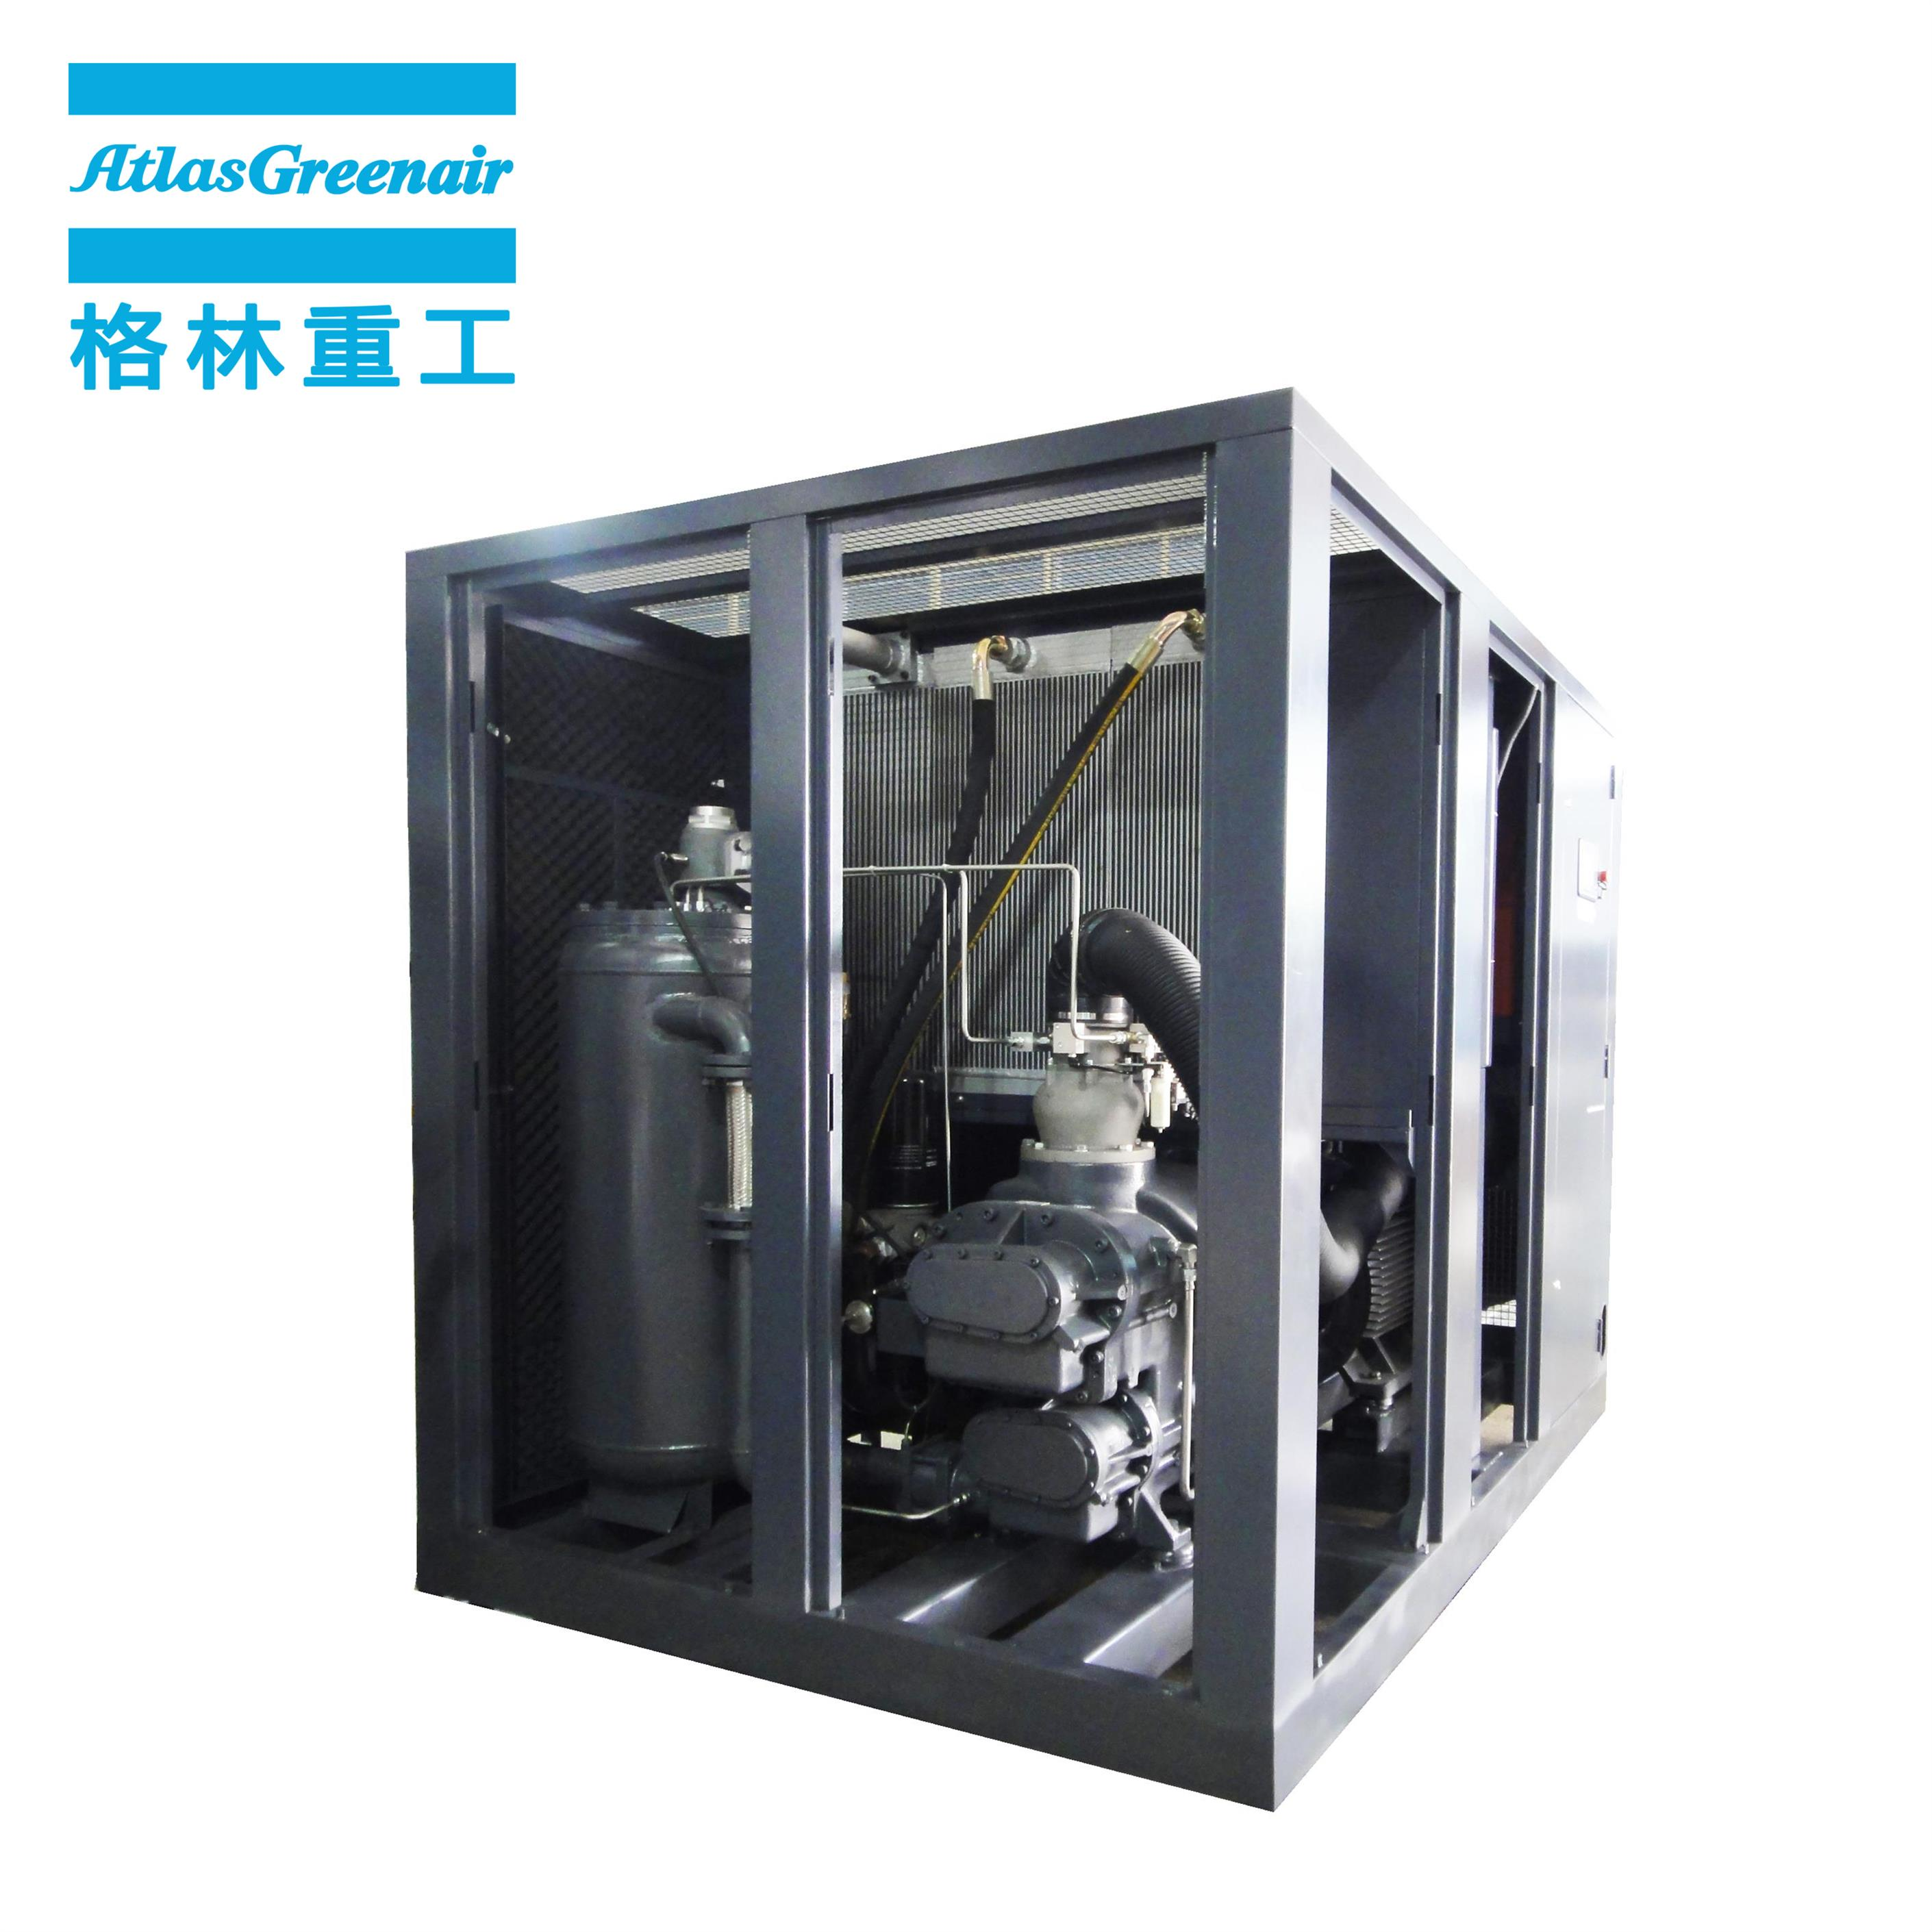 Atlas Greenair Screw Air Compressor new variable speed air compressor with an asynchronous motor for sale-1